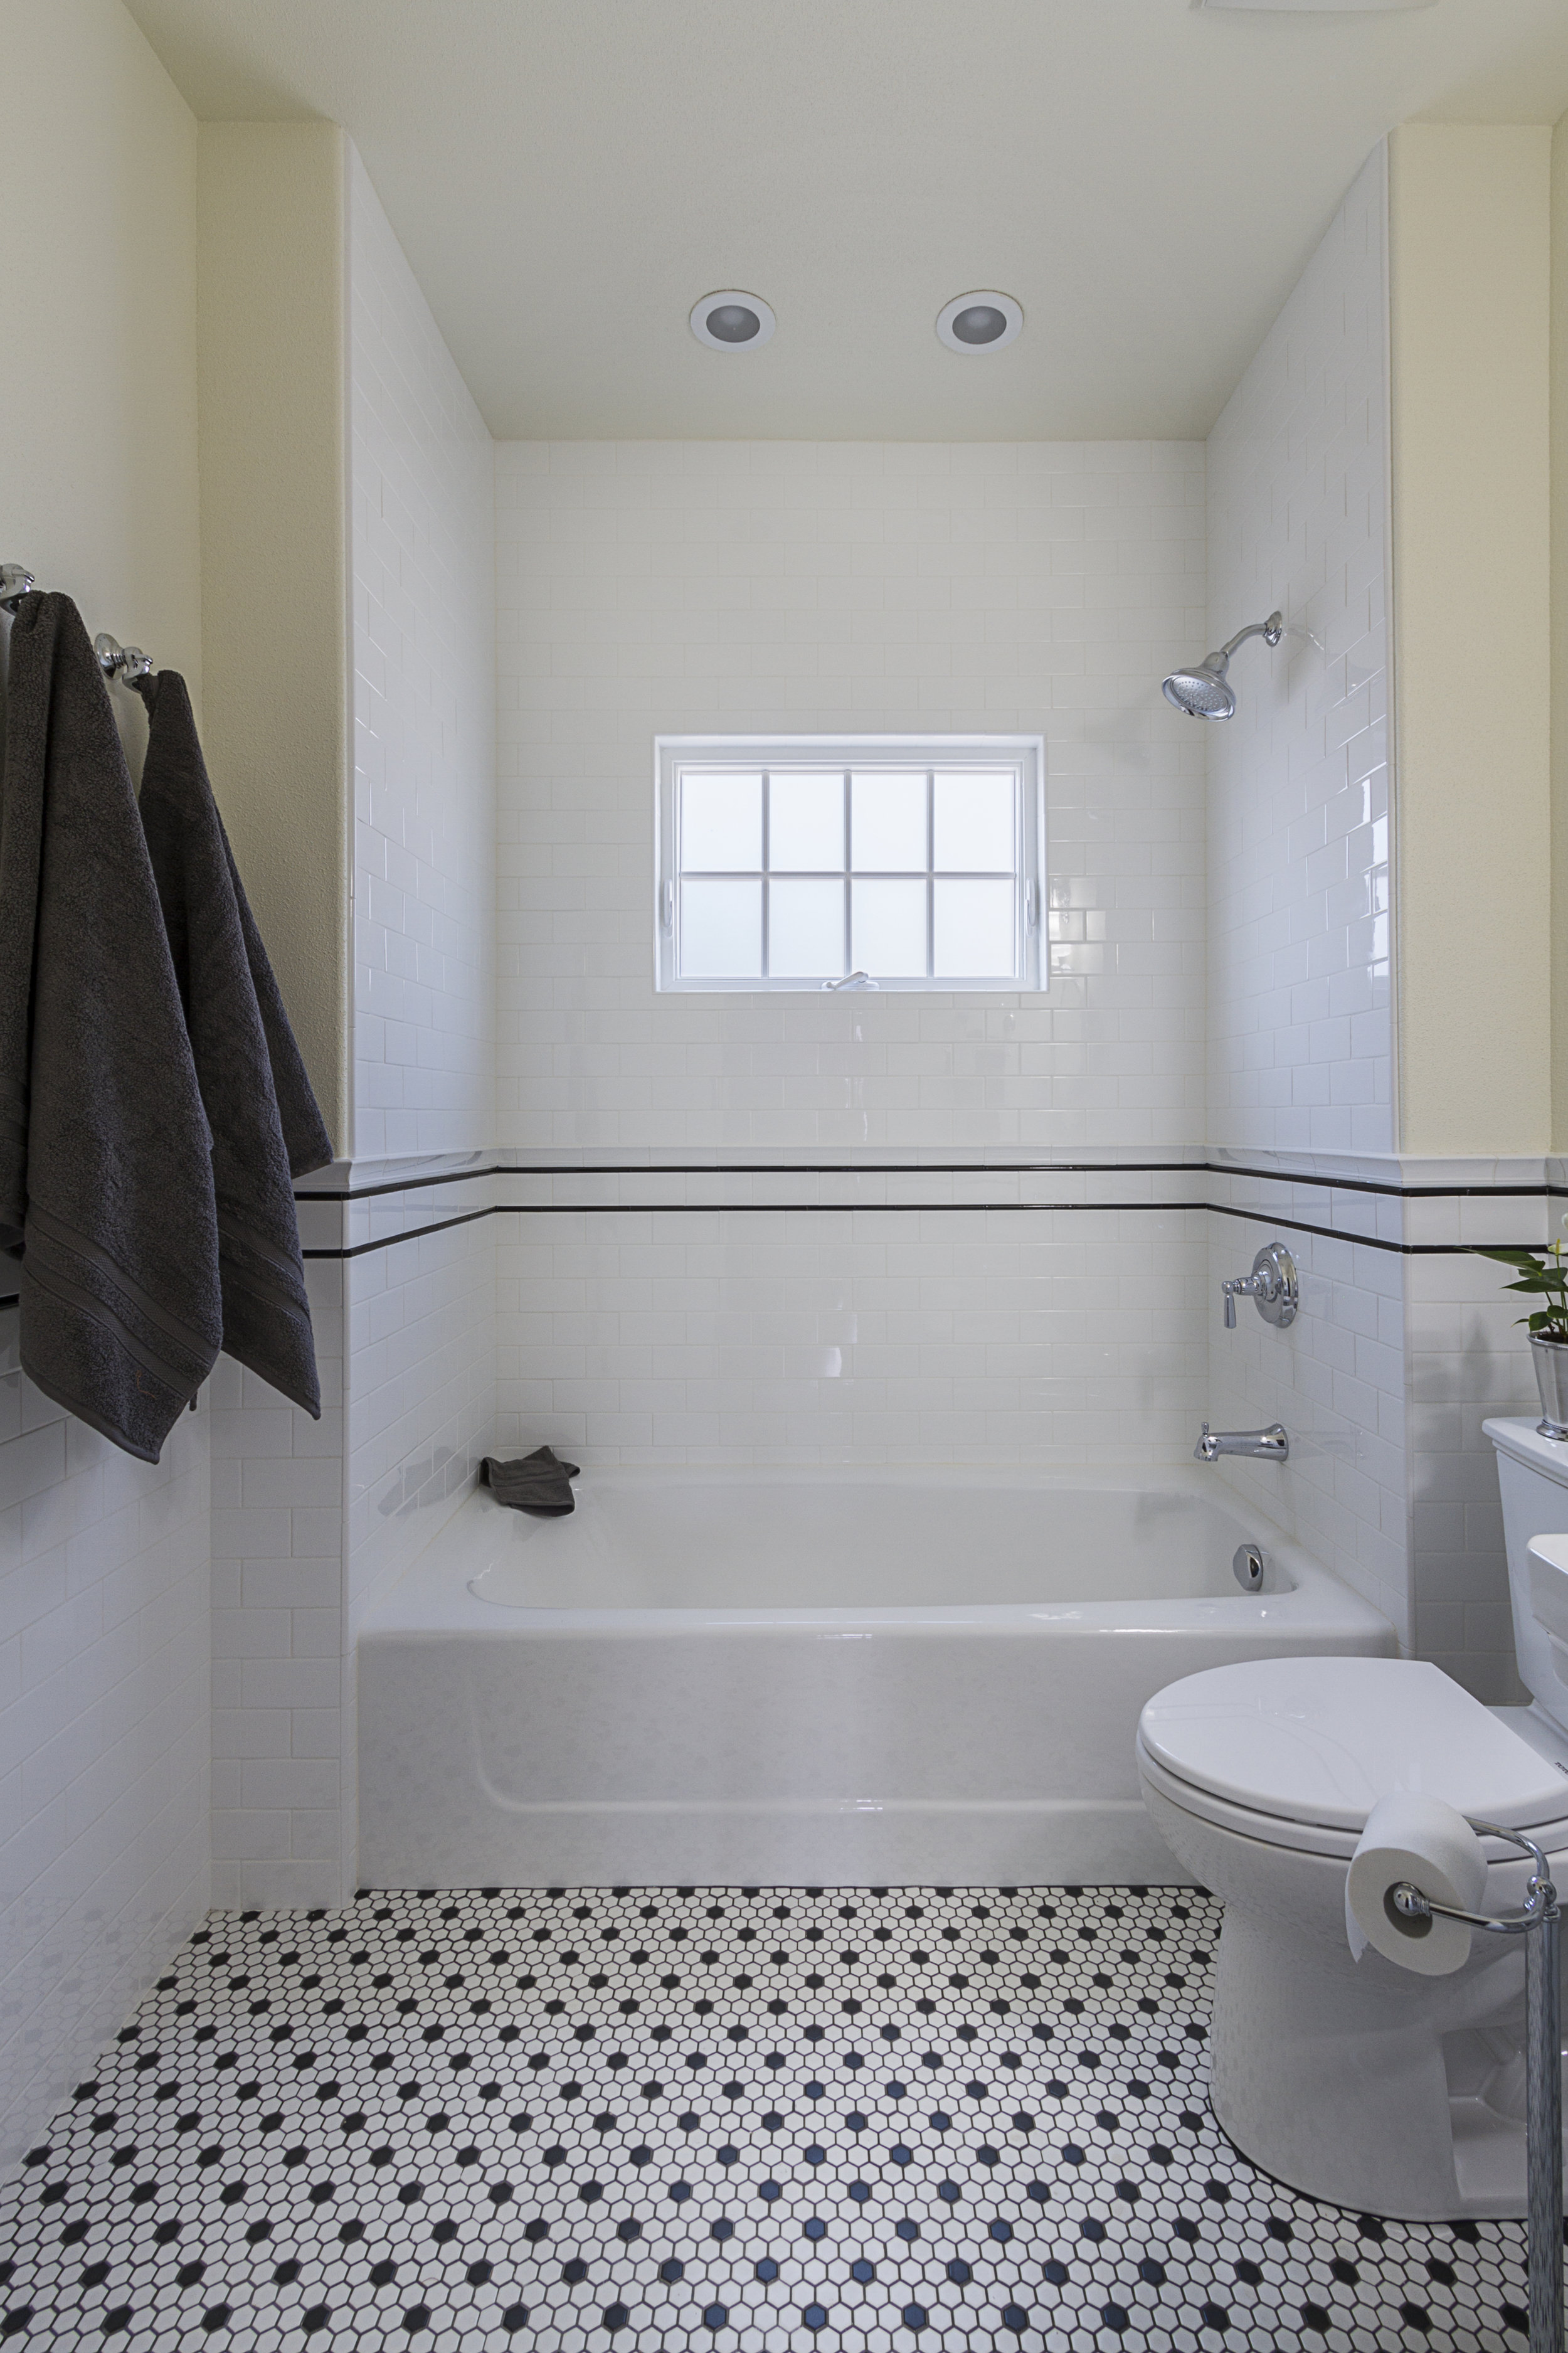 The Guest Bathroom was re-configured within the existing space.